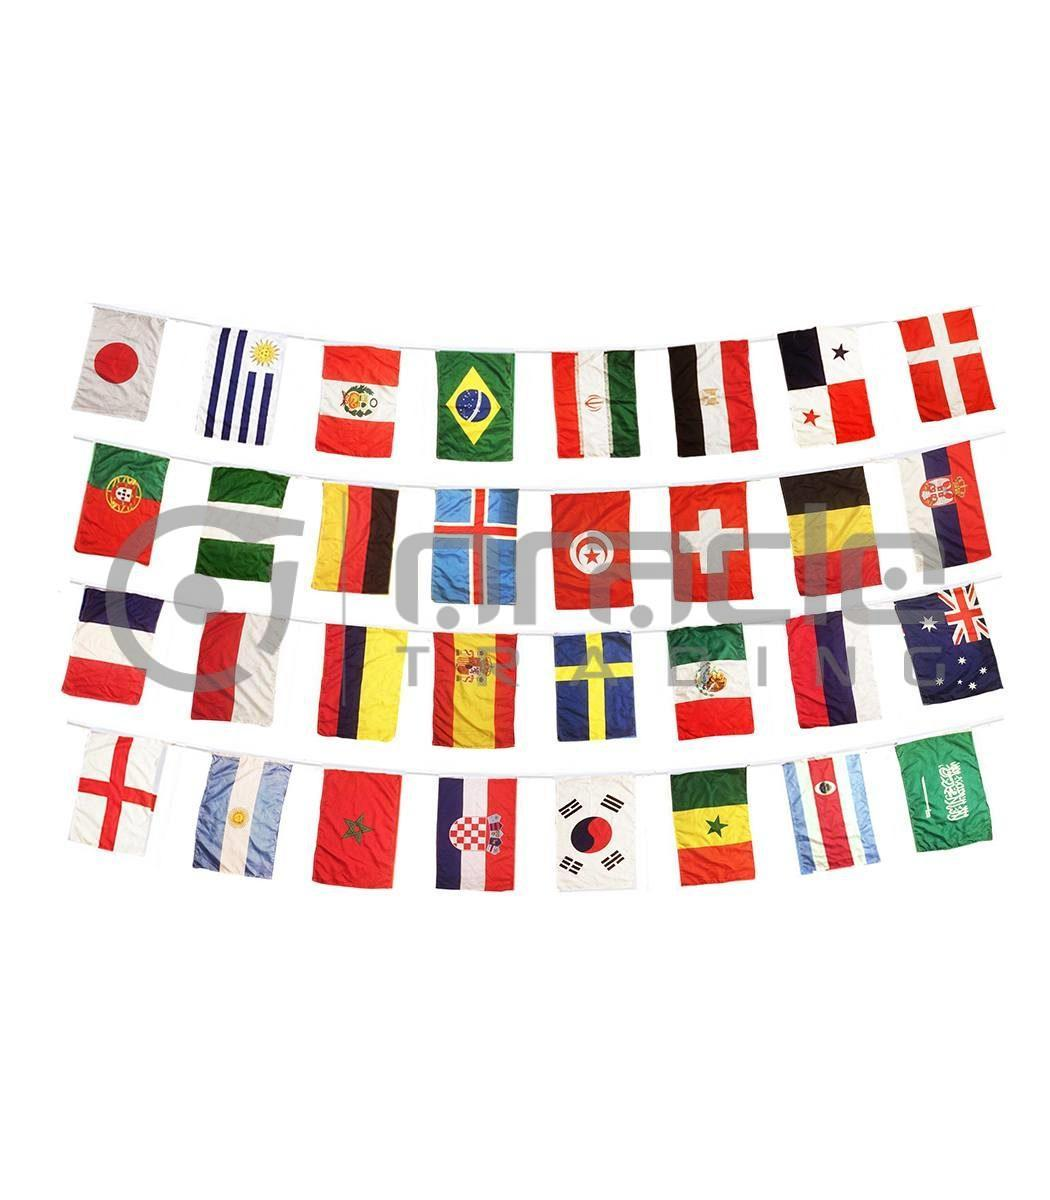 2018 World Cup Bunting - 32 Country